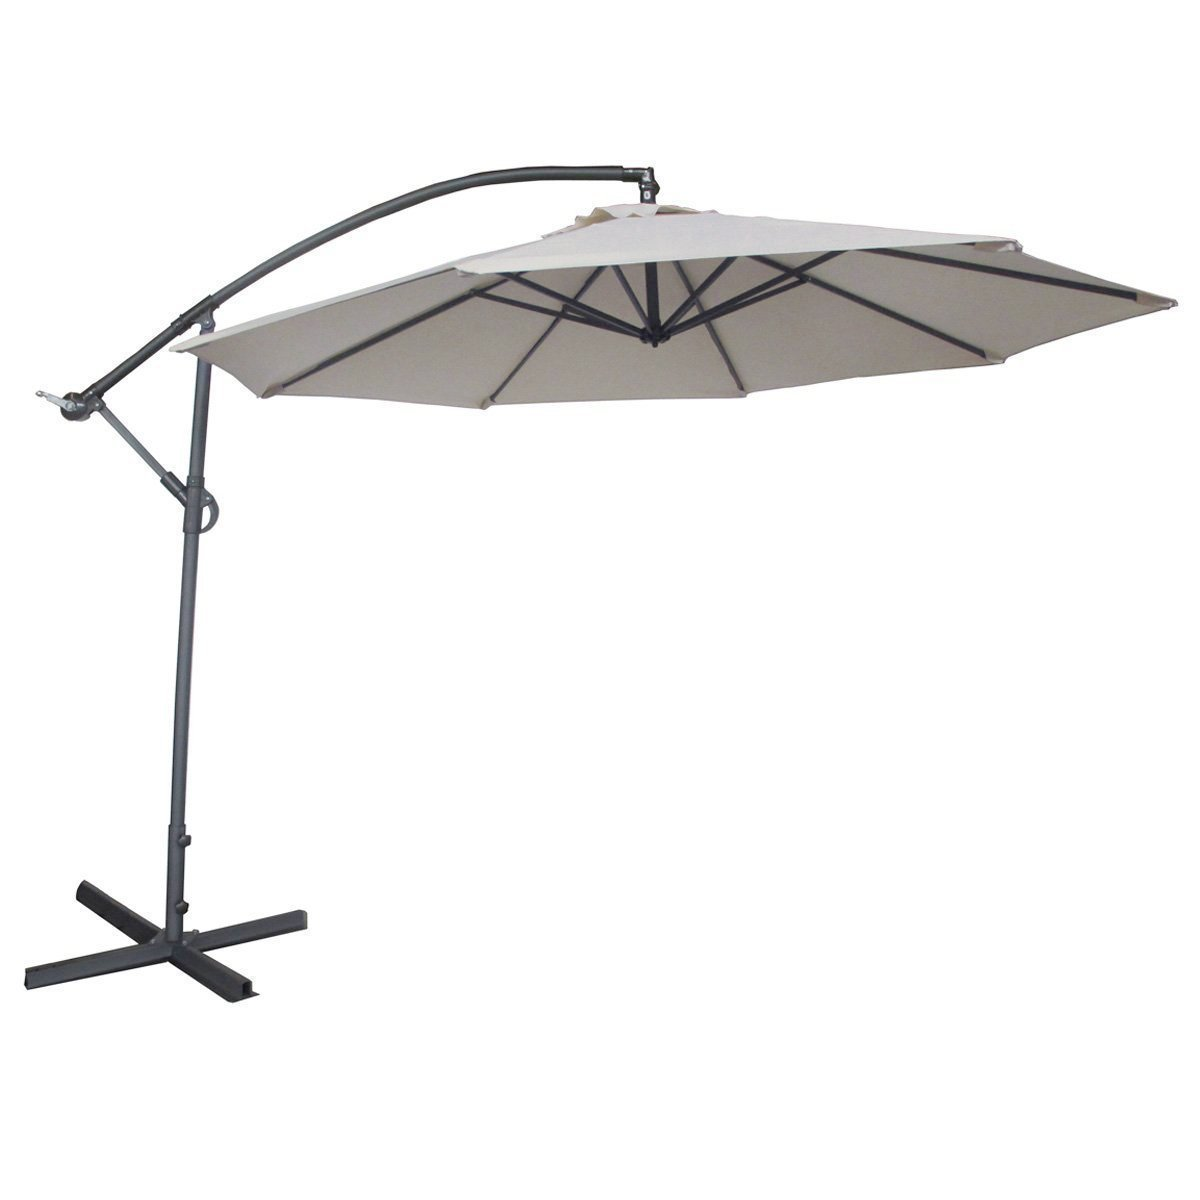 Wonderful Abba Patio 10 Feet Offset Cantilever Umbrella. Best Cantilever Umbrellas